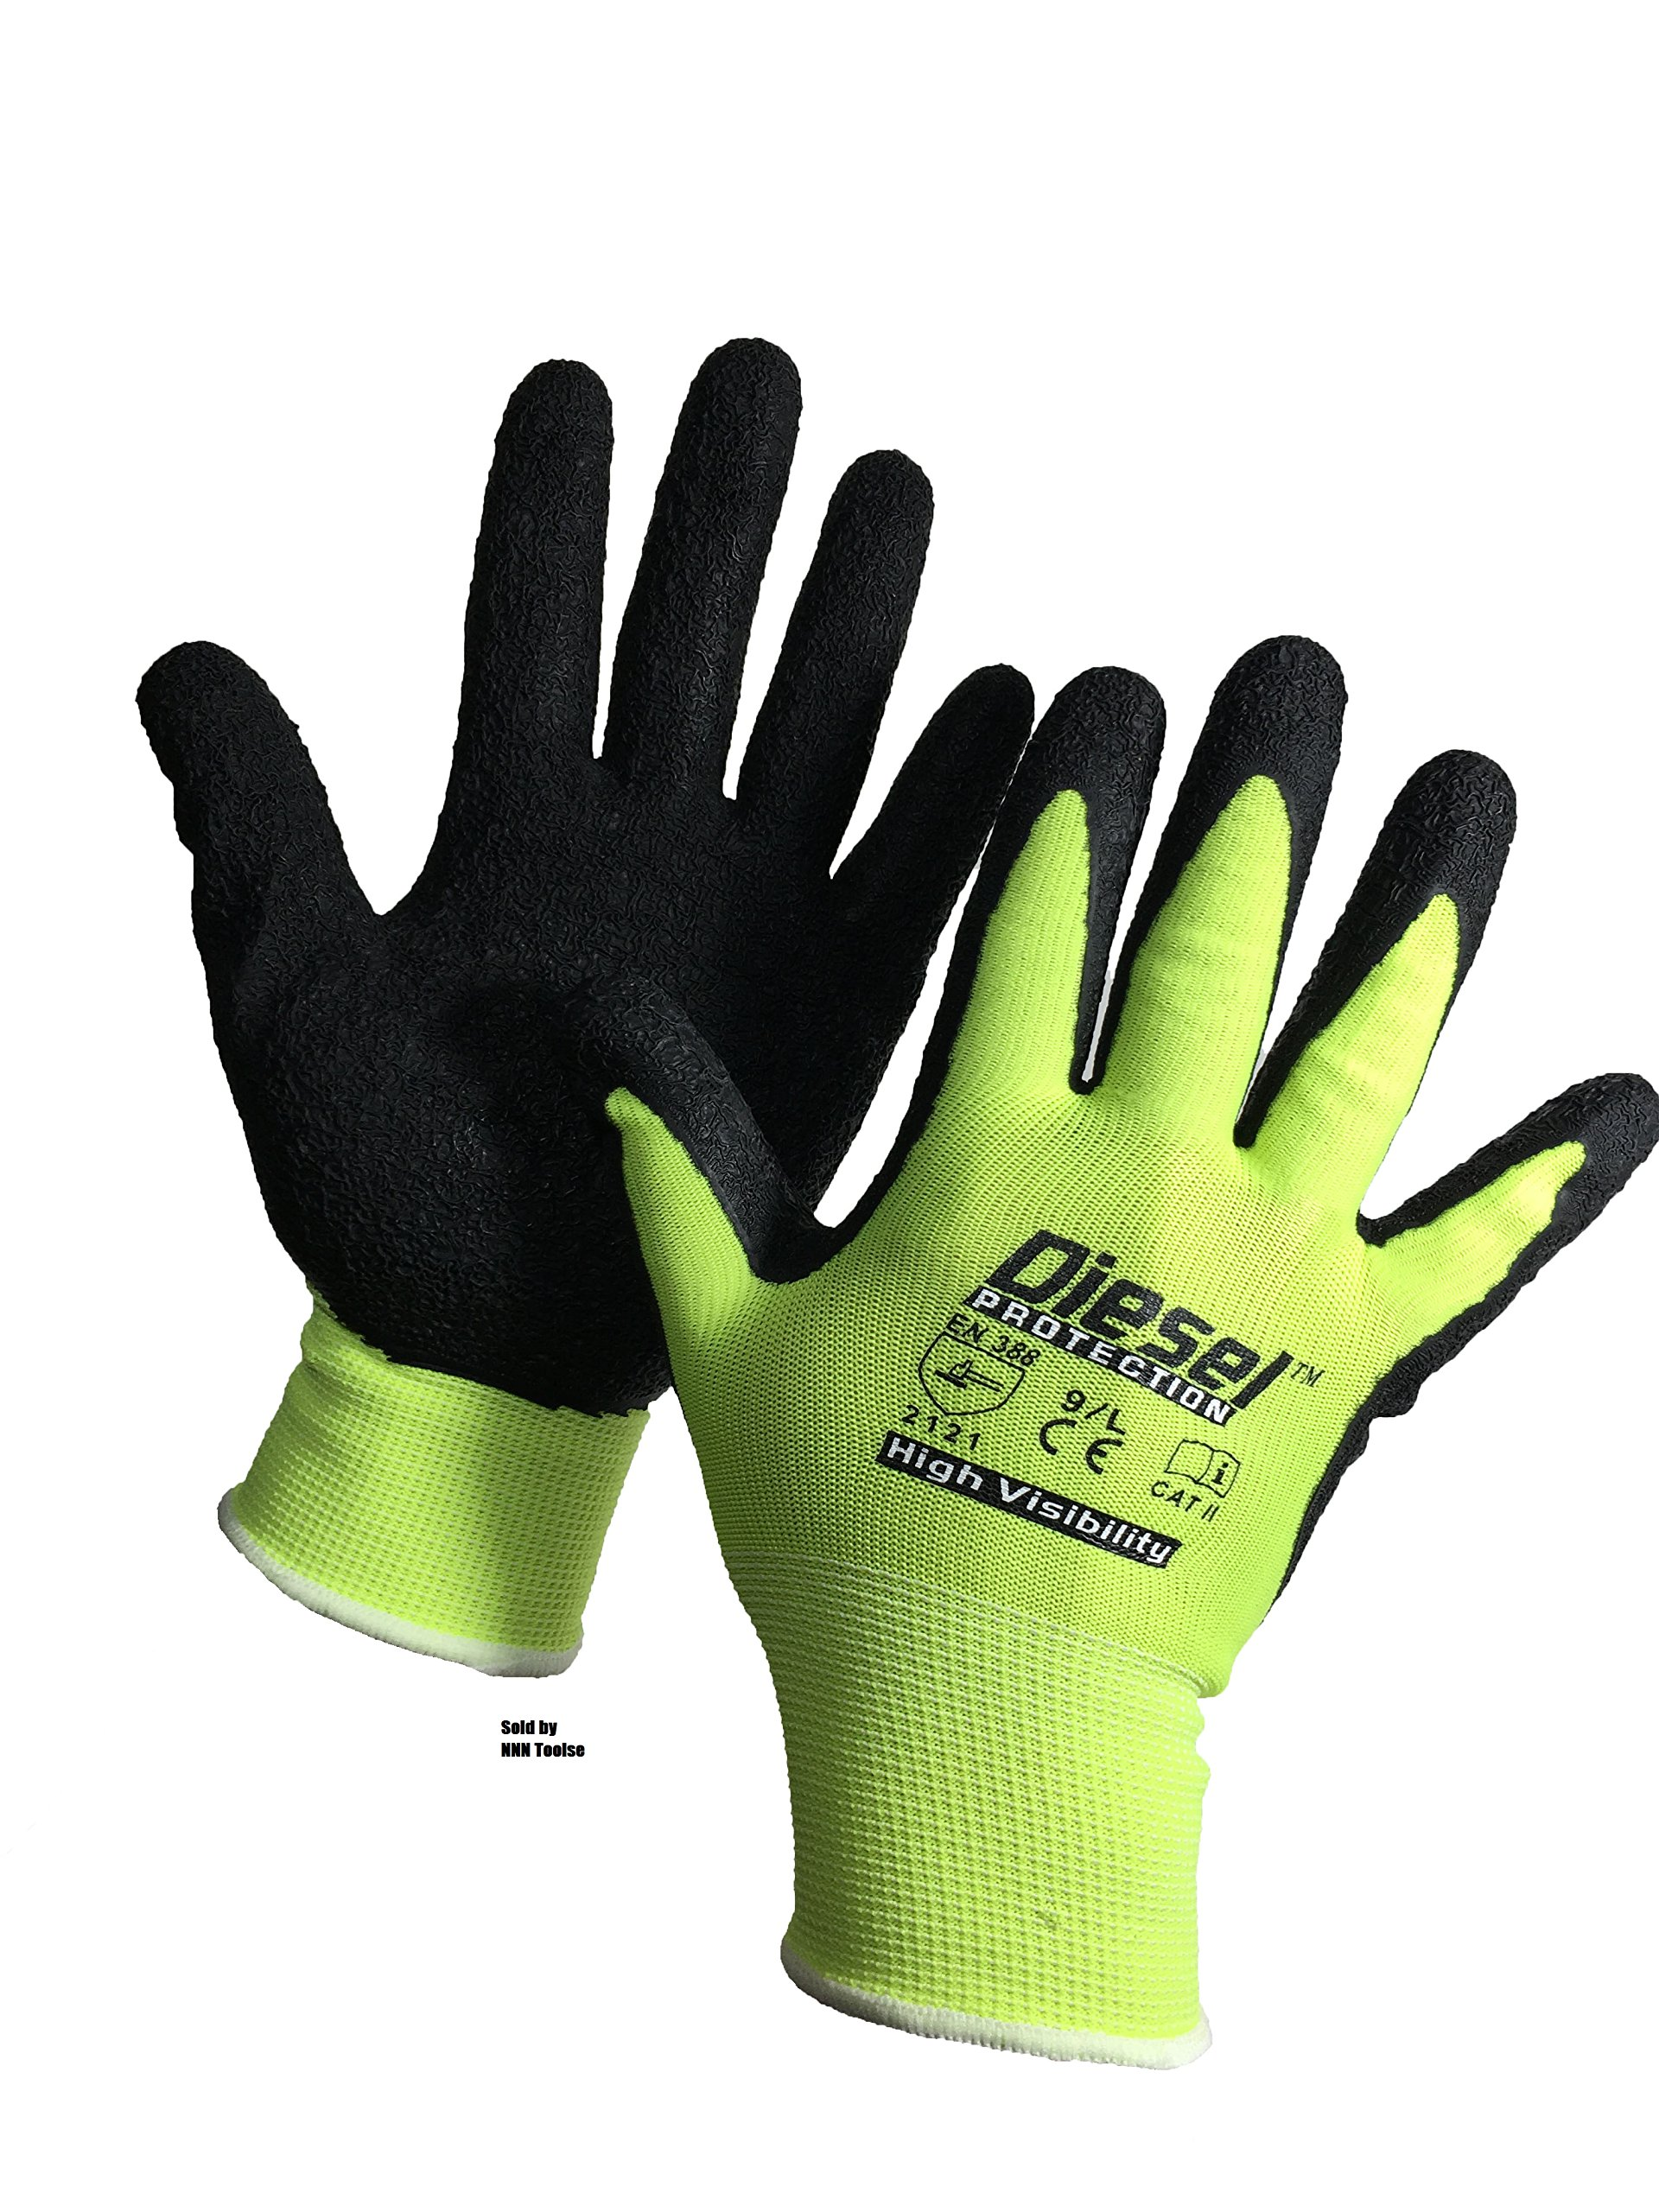 Size: Small/ 6 Pair Diesel-Grip Lime Safety Gloves Lime Safety Glove General Purpose